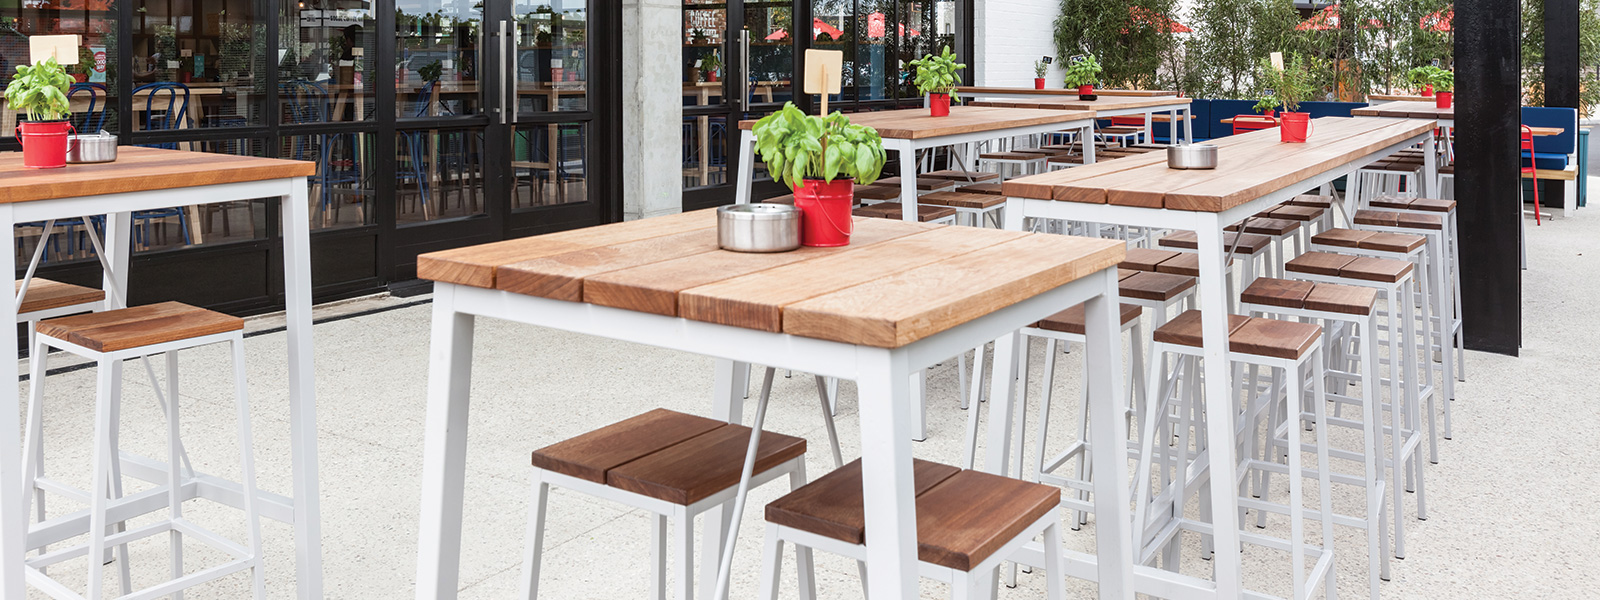 Extant Outdoor Stool Harrows Contract Furniture Archipro